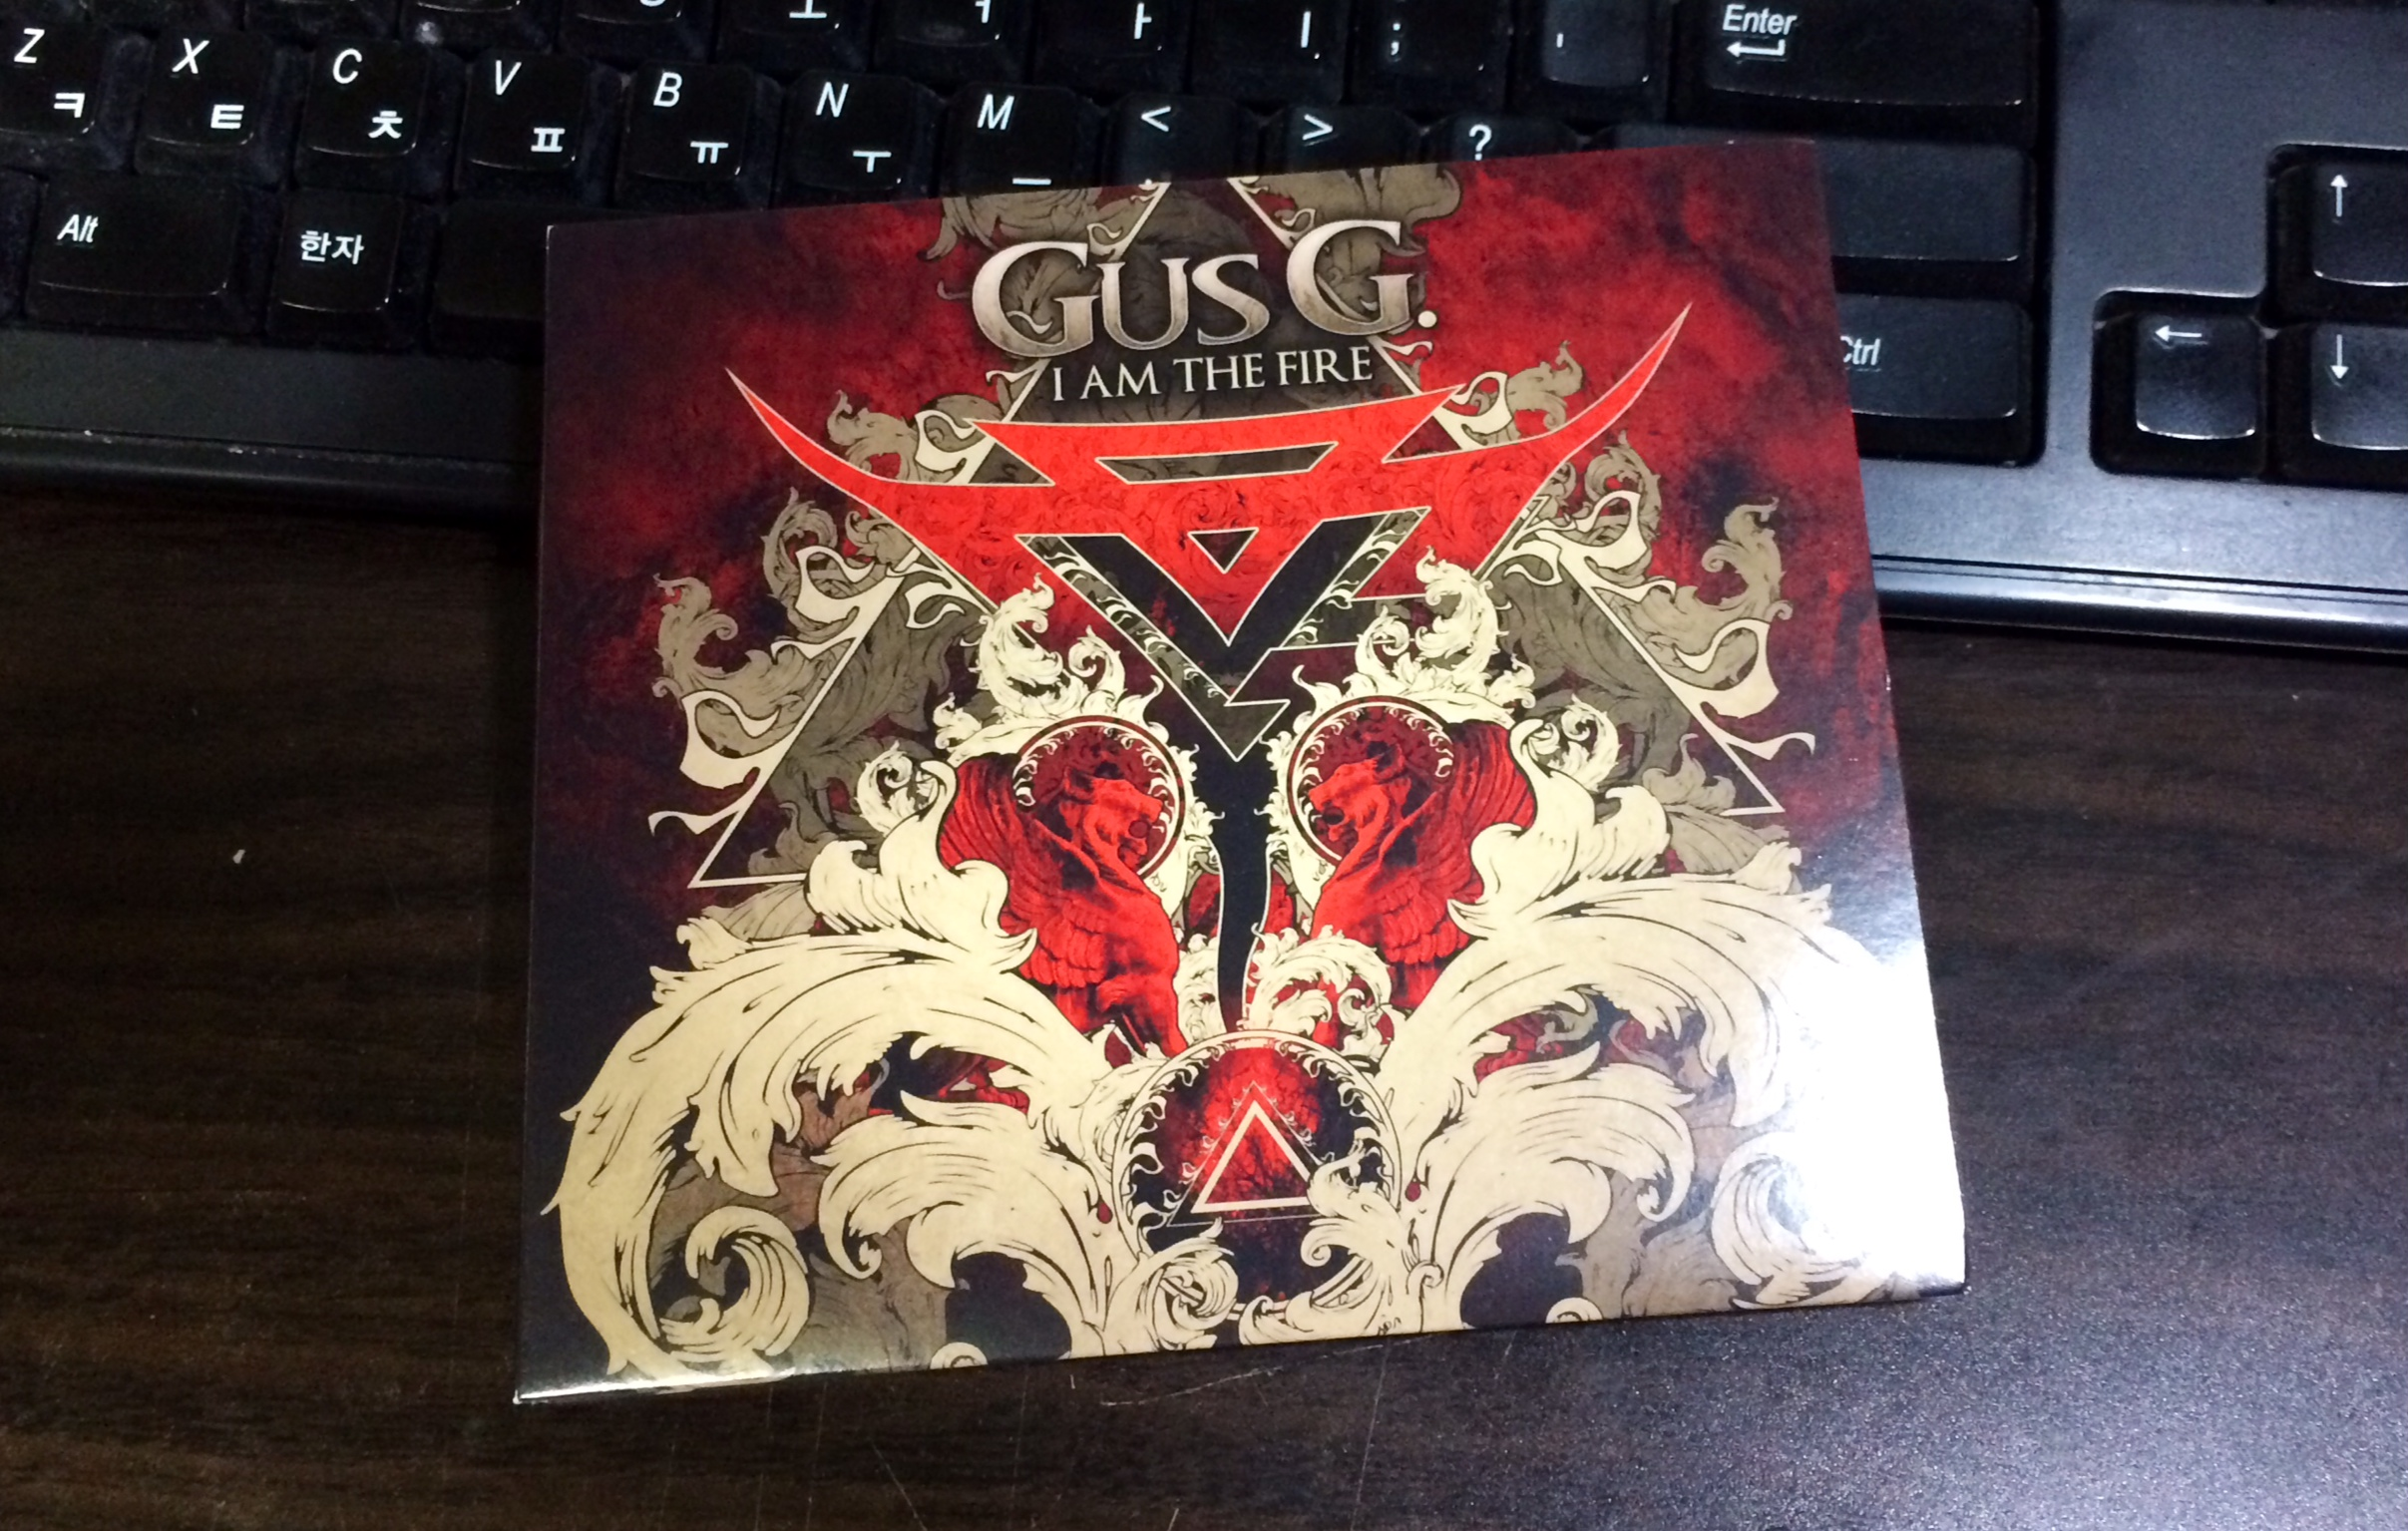 I Am The Fire - Gus G. / 2014